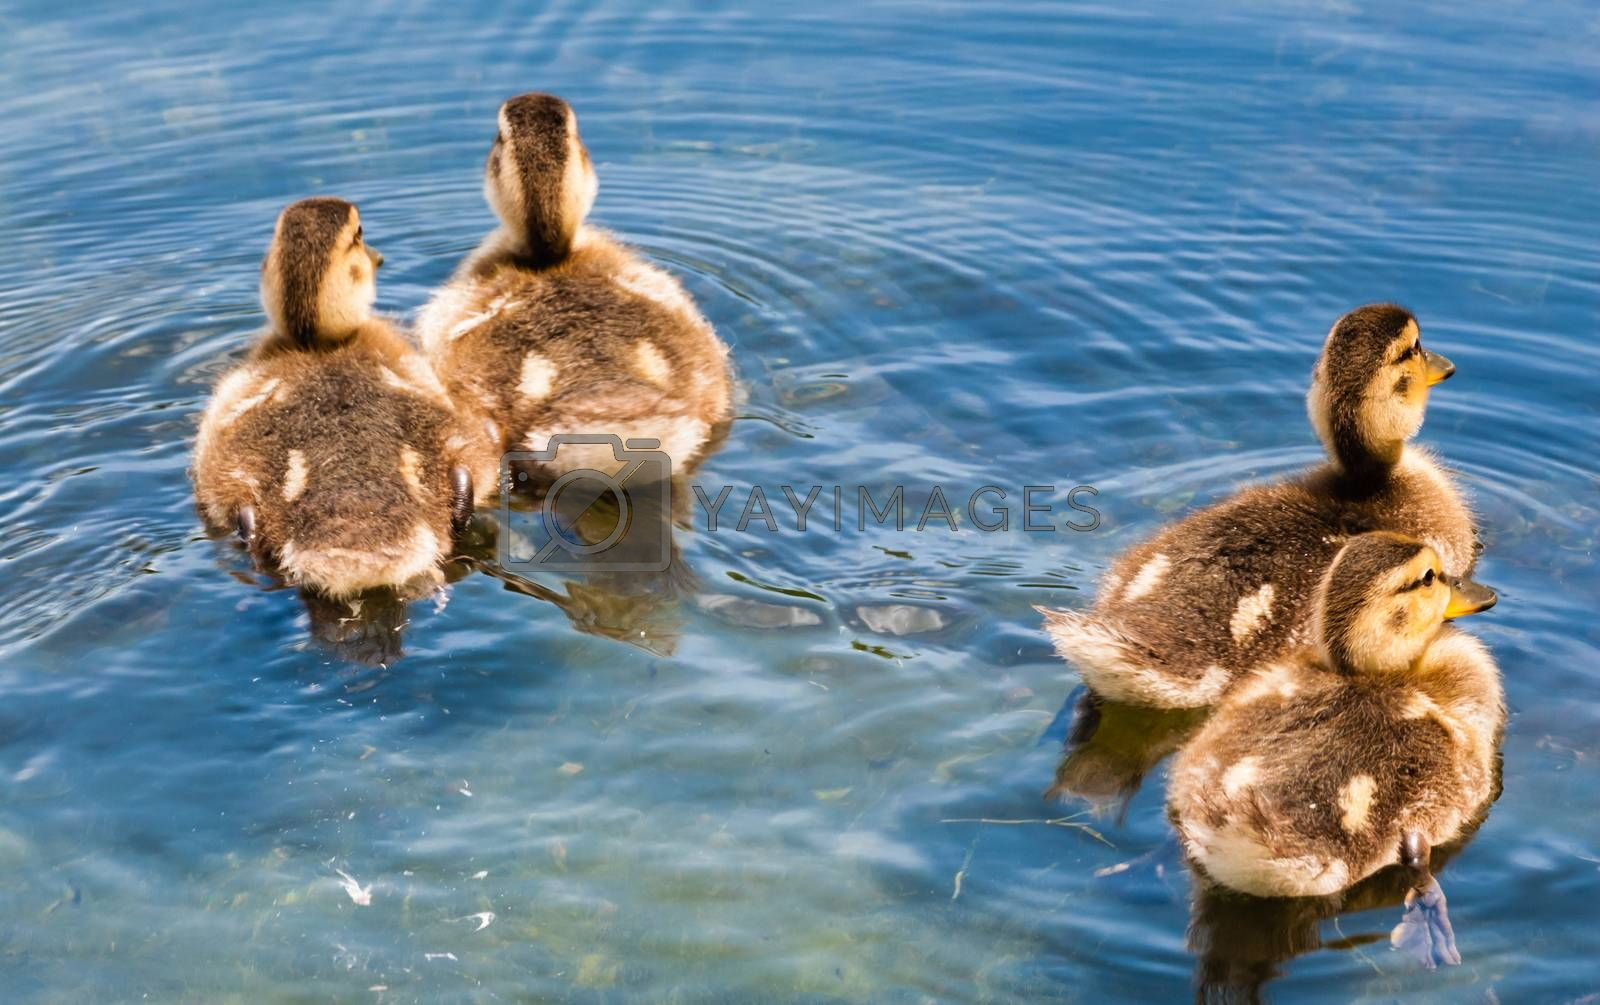 Four cute fluffy young ducklings from rear, swimming away on water in different directions, making ripples on water.